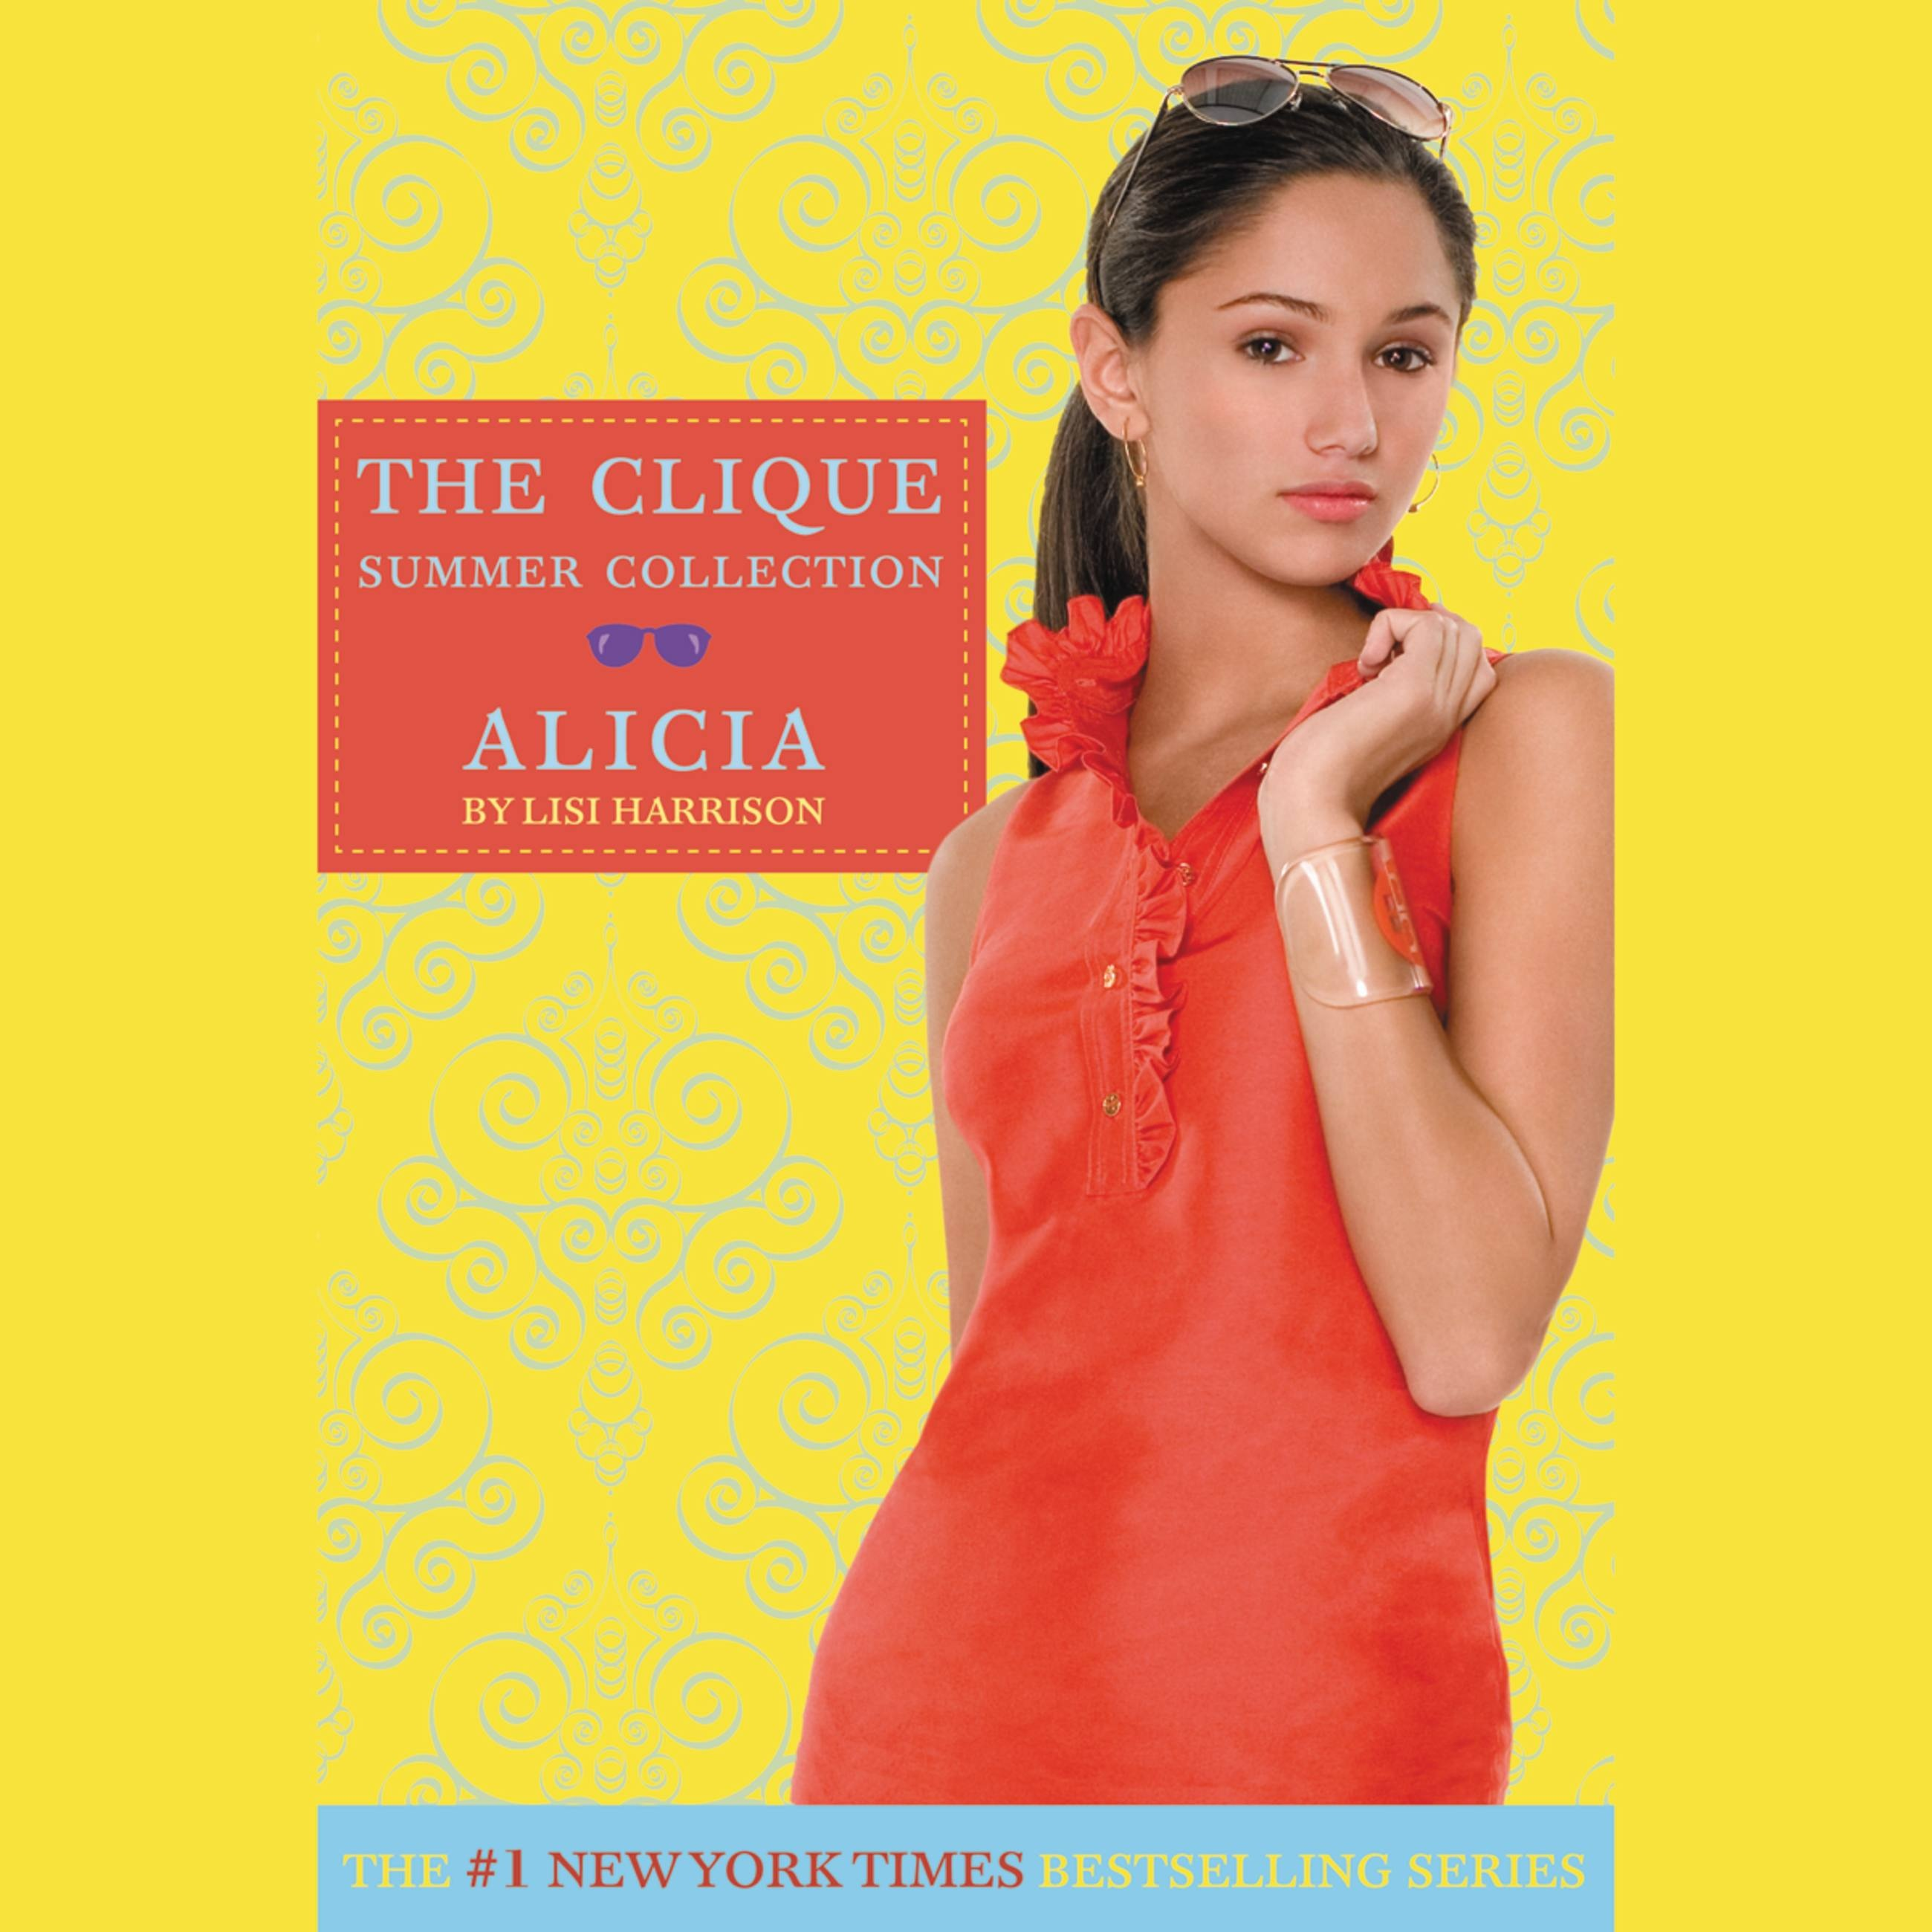 The Clique Summer Collection #3: Alicia